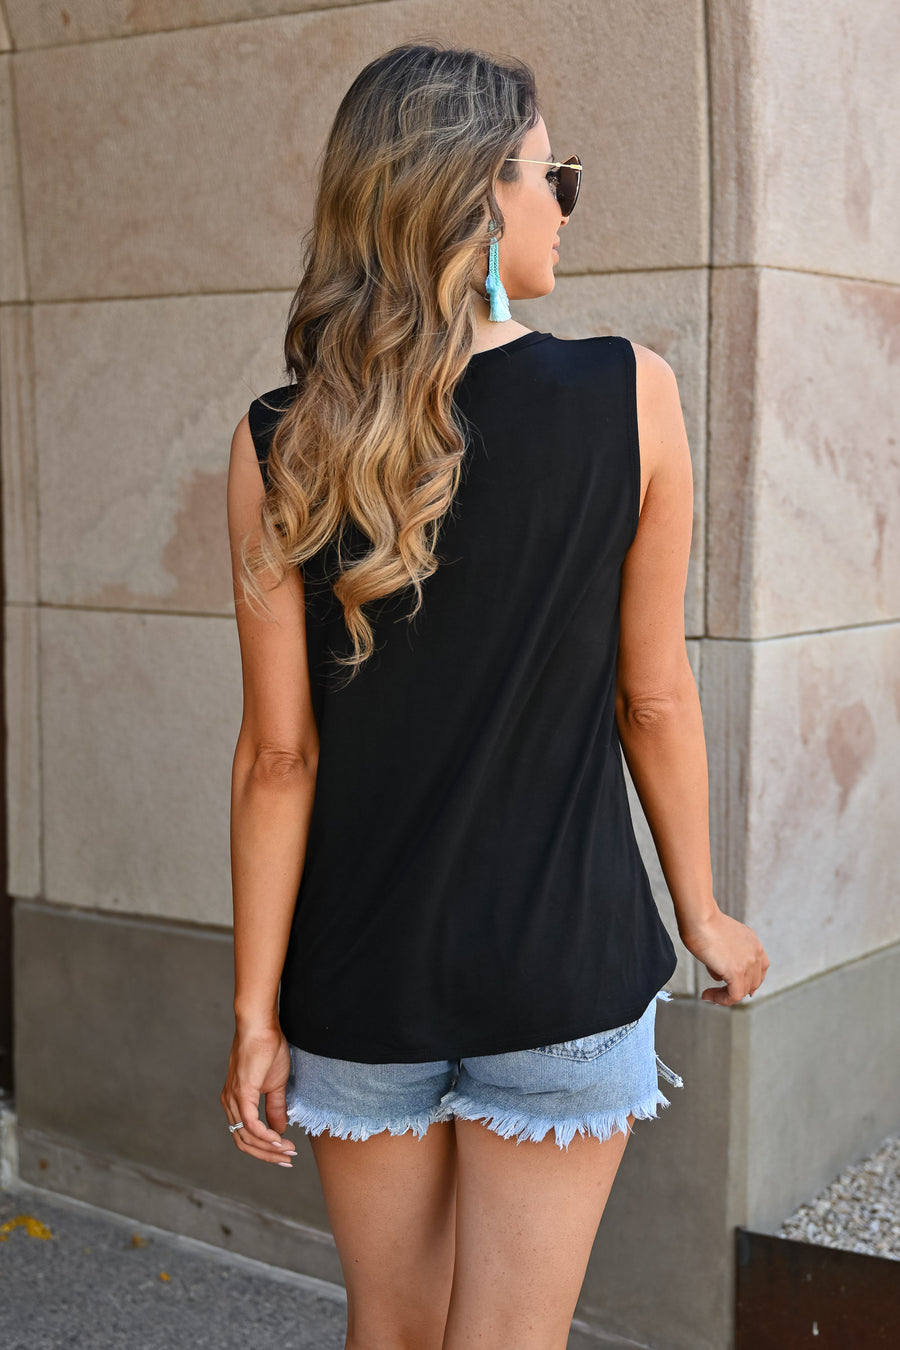 """Vacay"" Graphic Tank Top - Black"